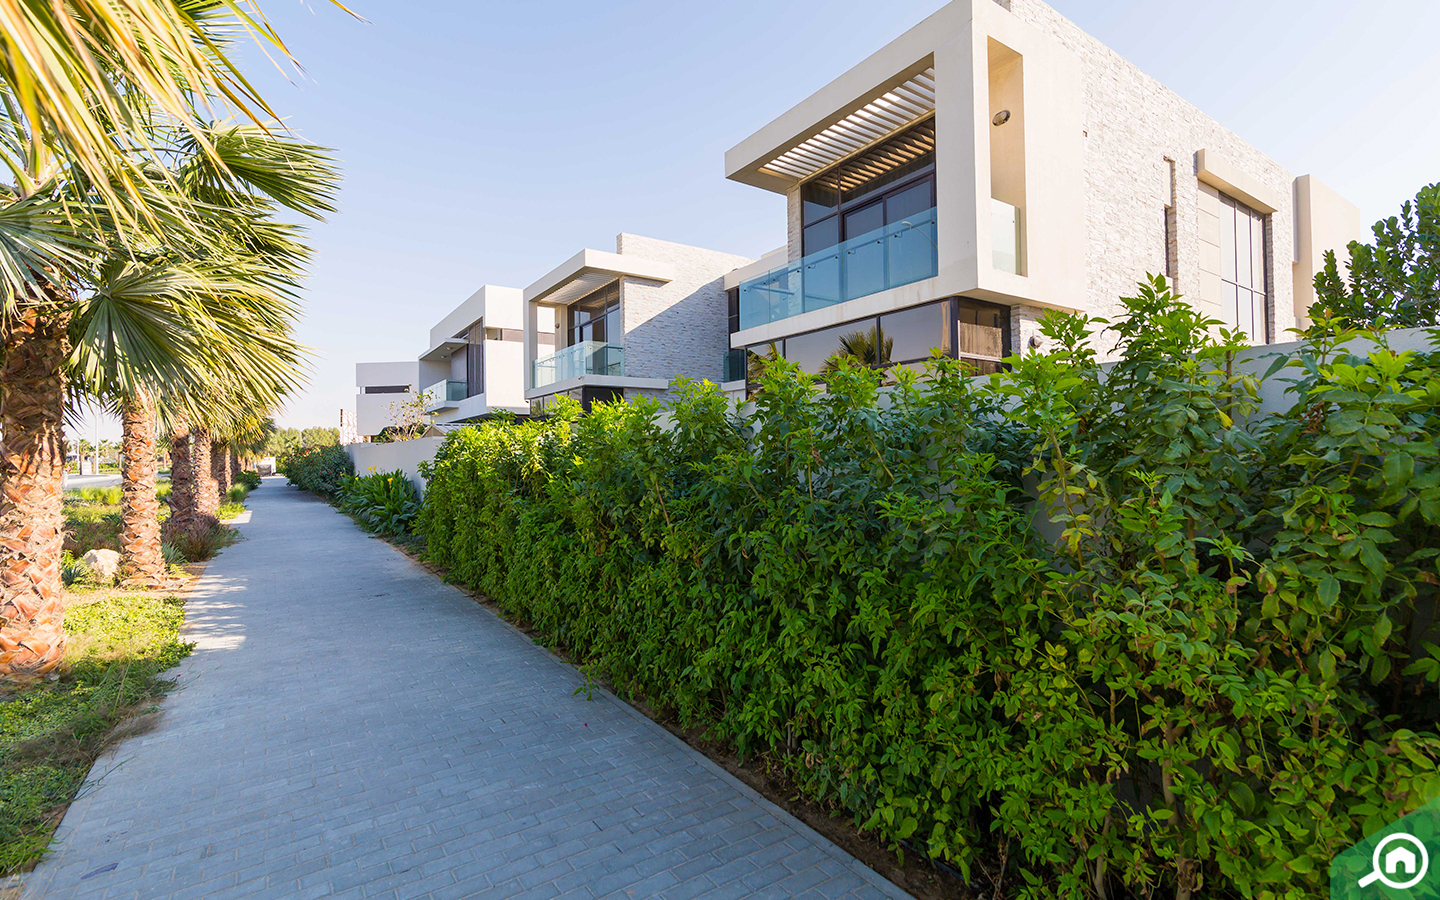 Villas in Damac Hills (Akoya by DAMAC)